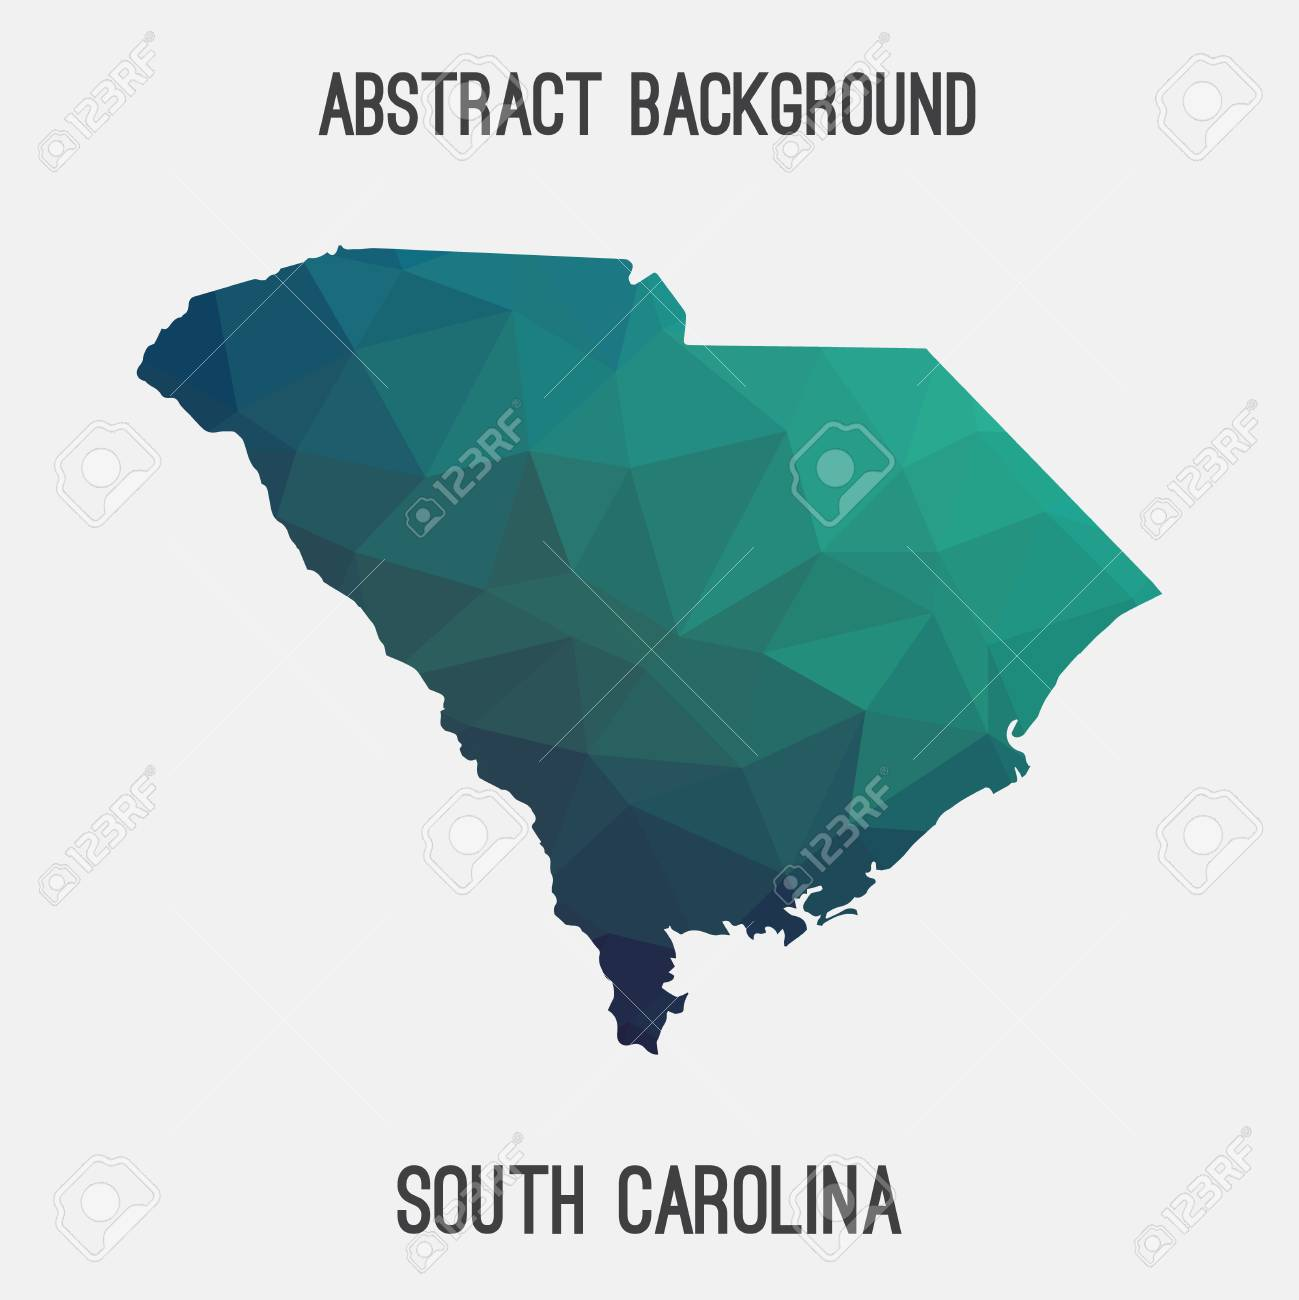 South Carolina State Map In Geometric Polygonal Style.Abstract ...